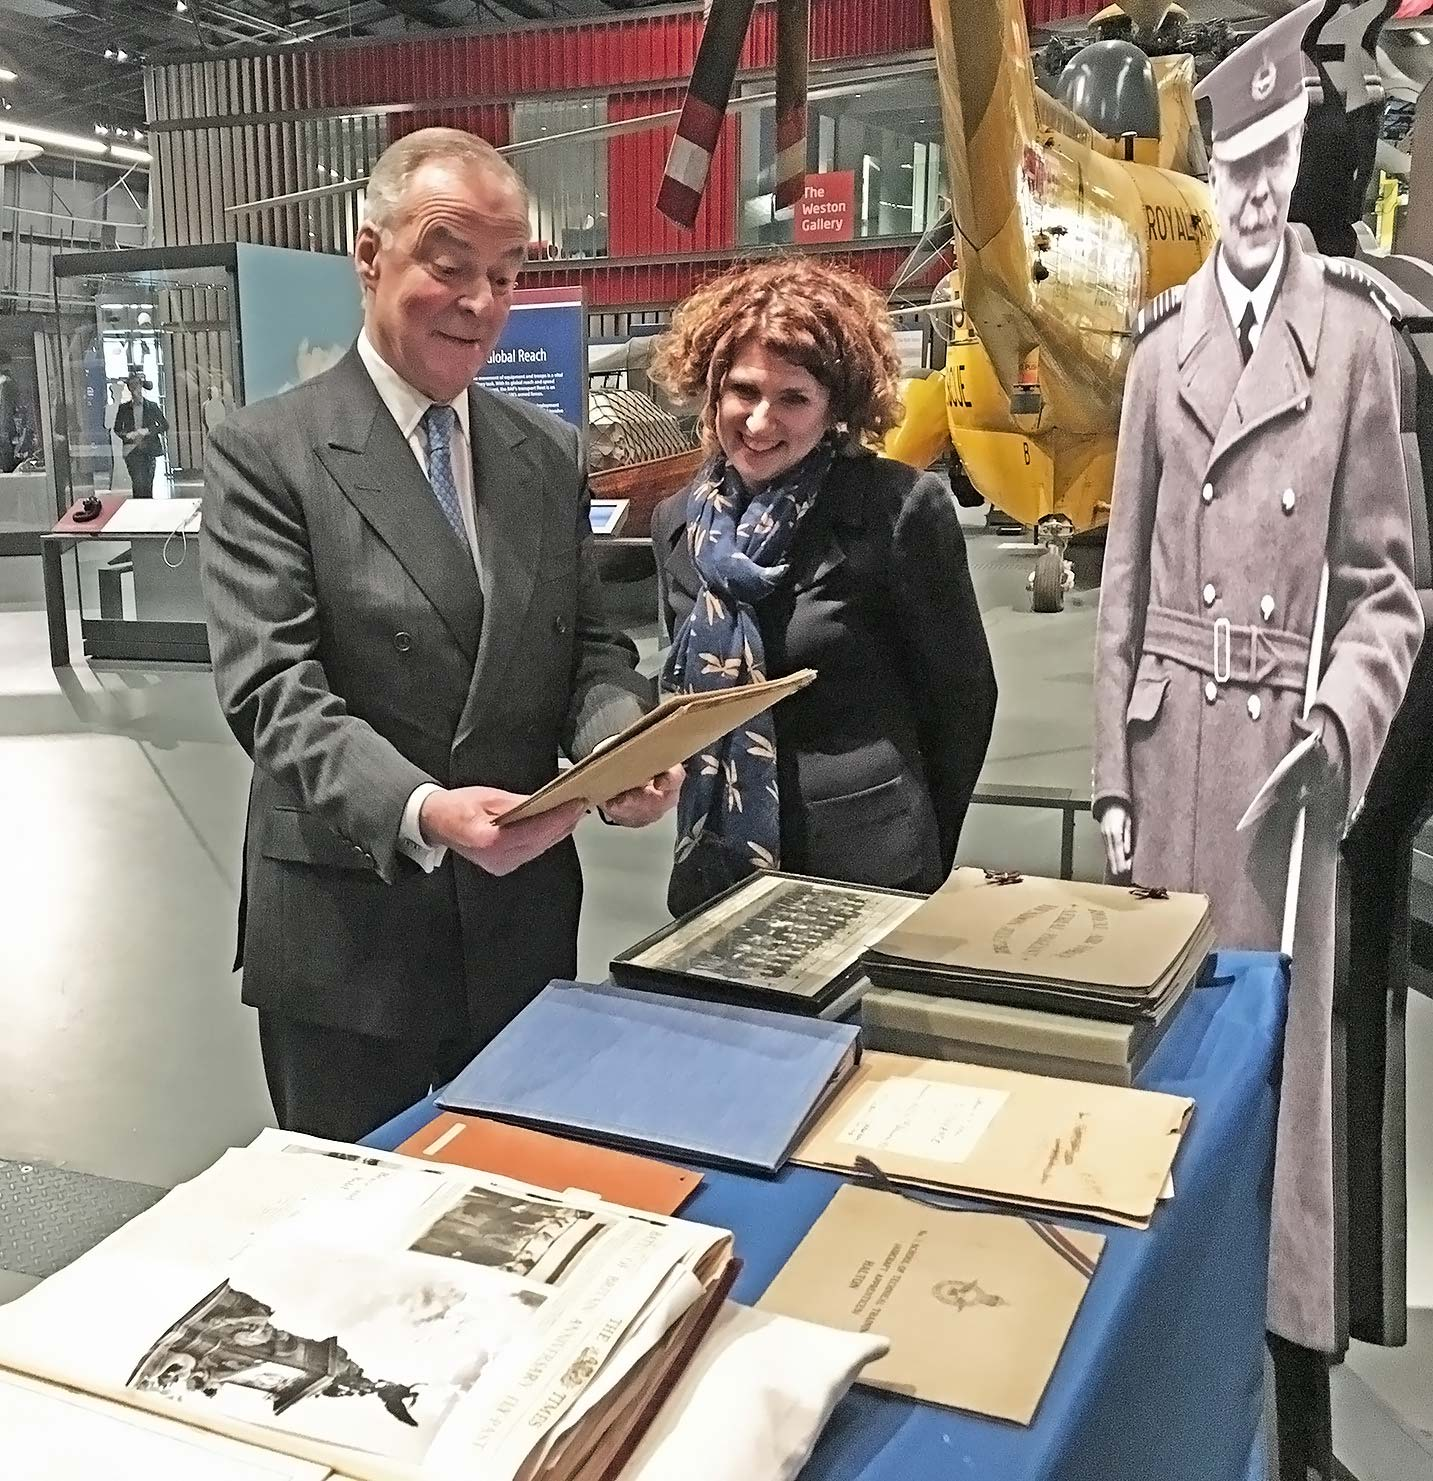 Lord Trenchard et Maggie Appleton au Royal Air Force Museum. © Royal Air Force Museum.